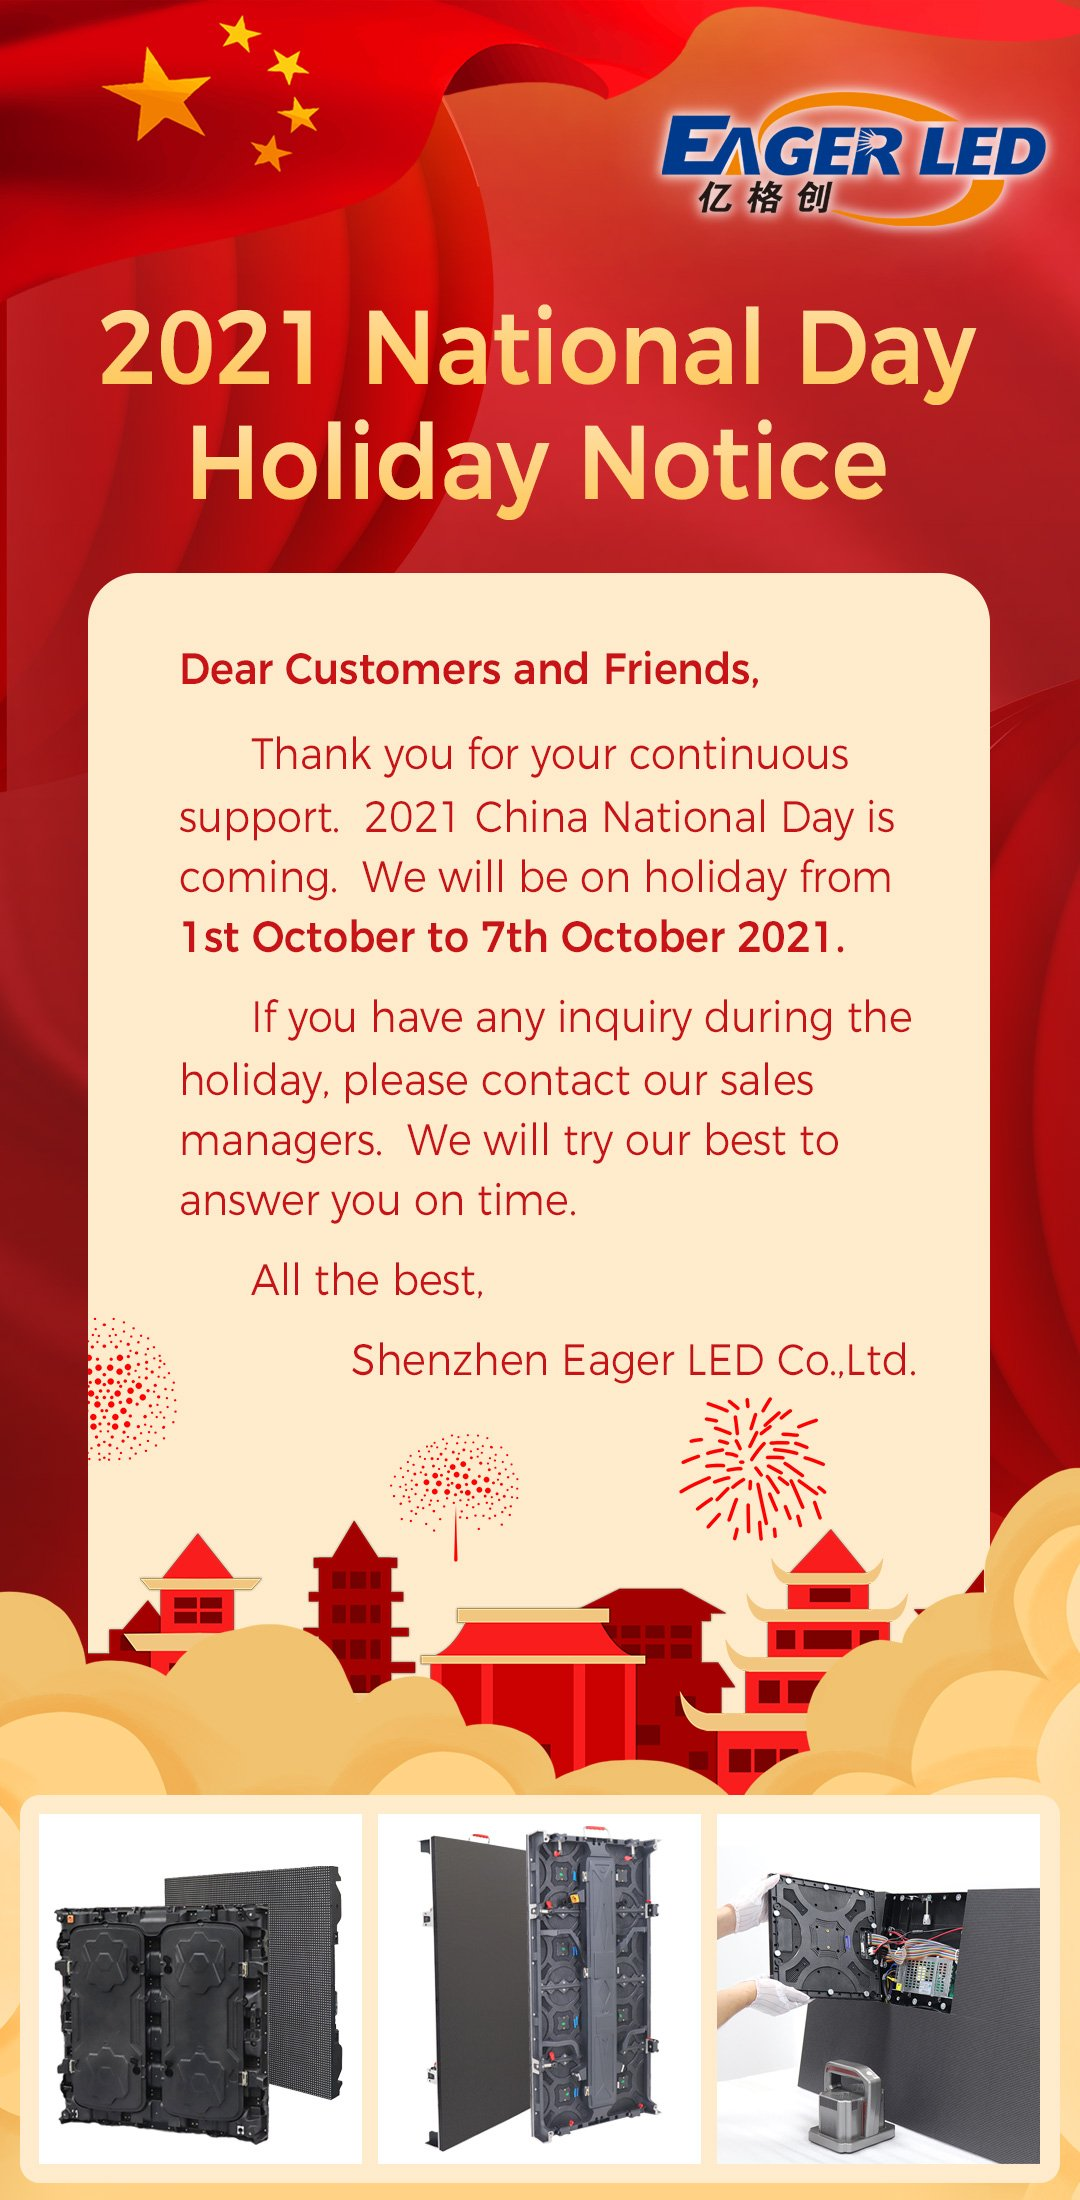 EagerLED 2021 National Day holiday notice